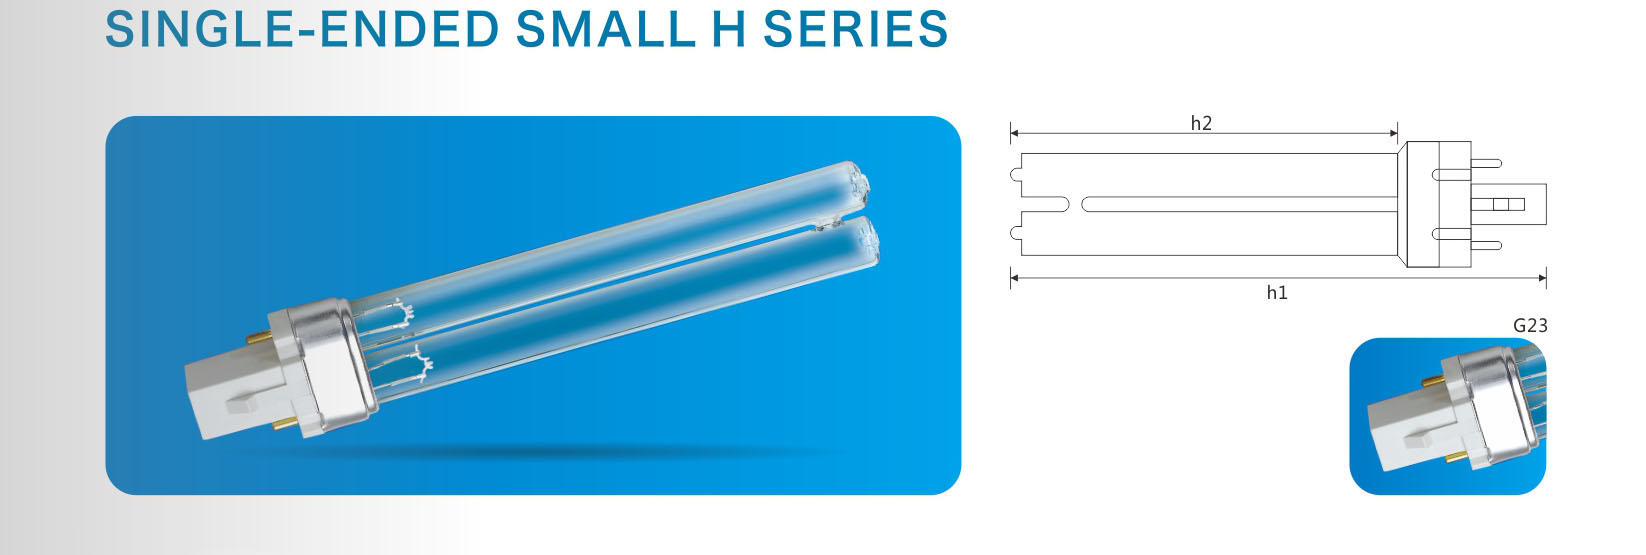 Single-ended small H series ultraviolet disinfection lamps for aquatic animals